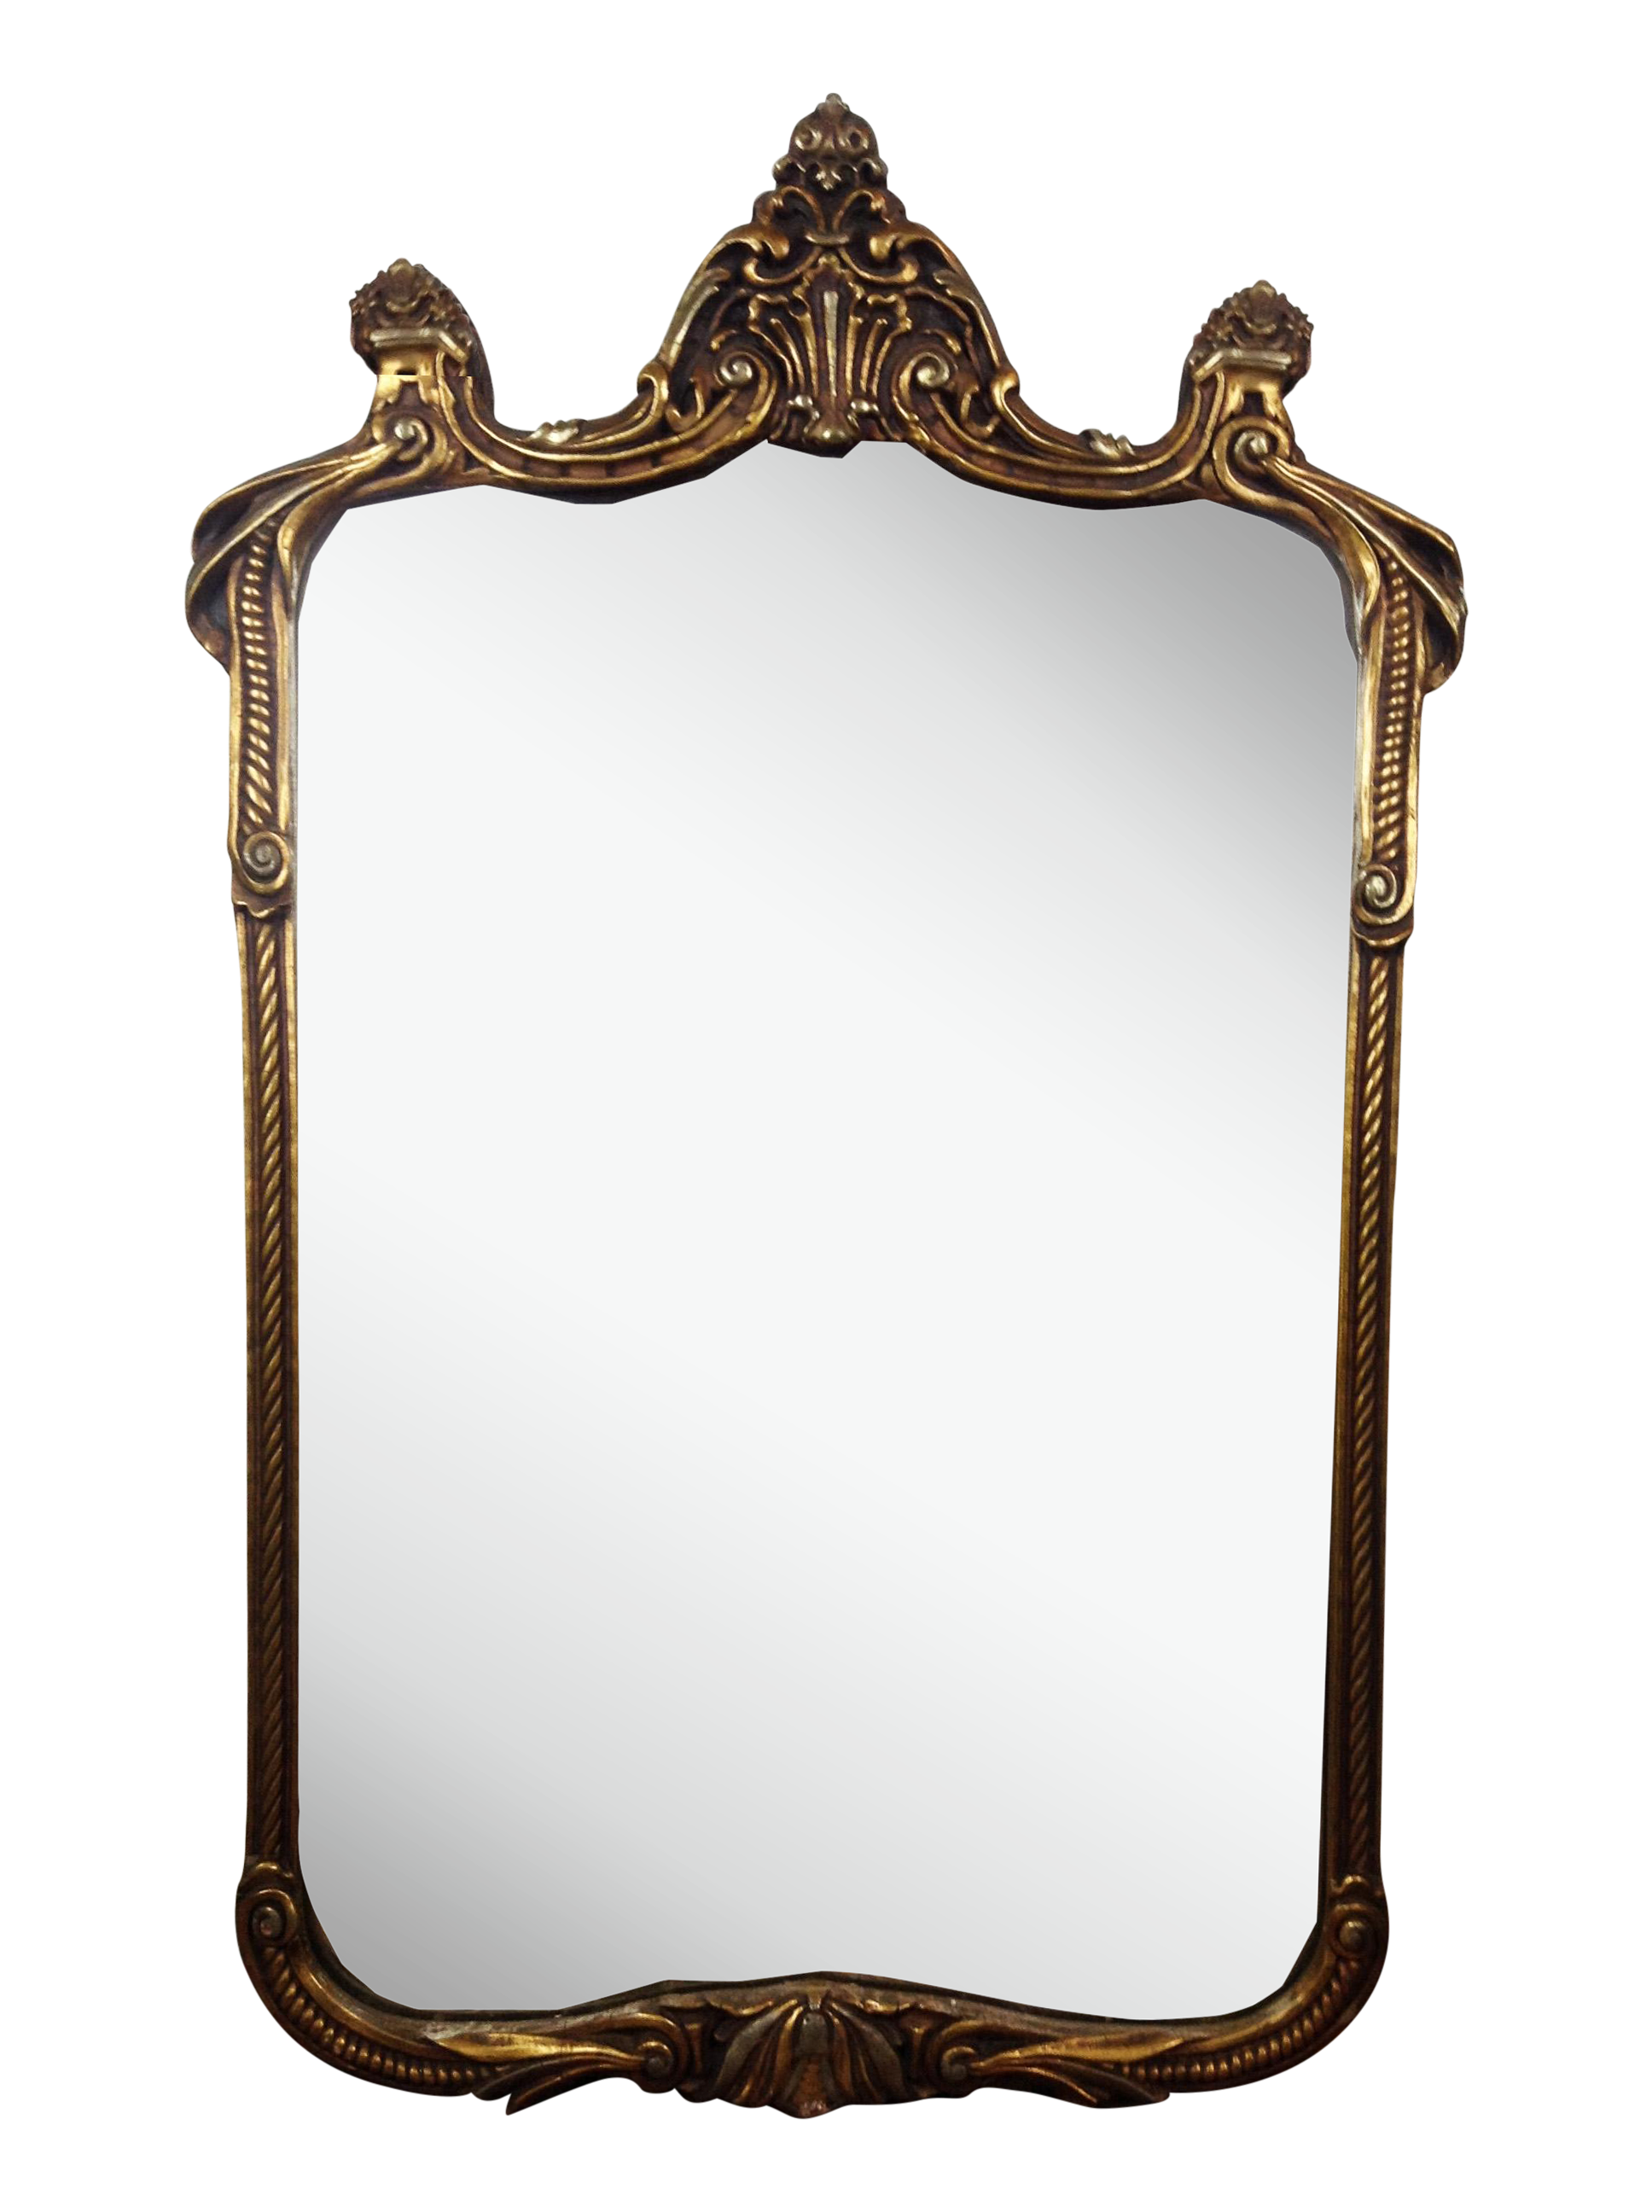 Gilded art nouveau wall mirror chairish amipublicfo Image collections